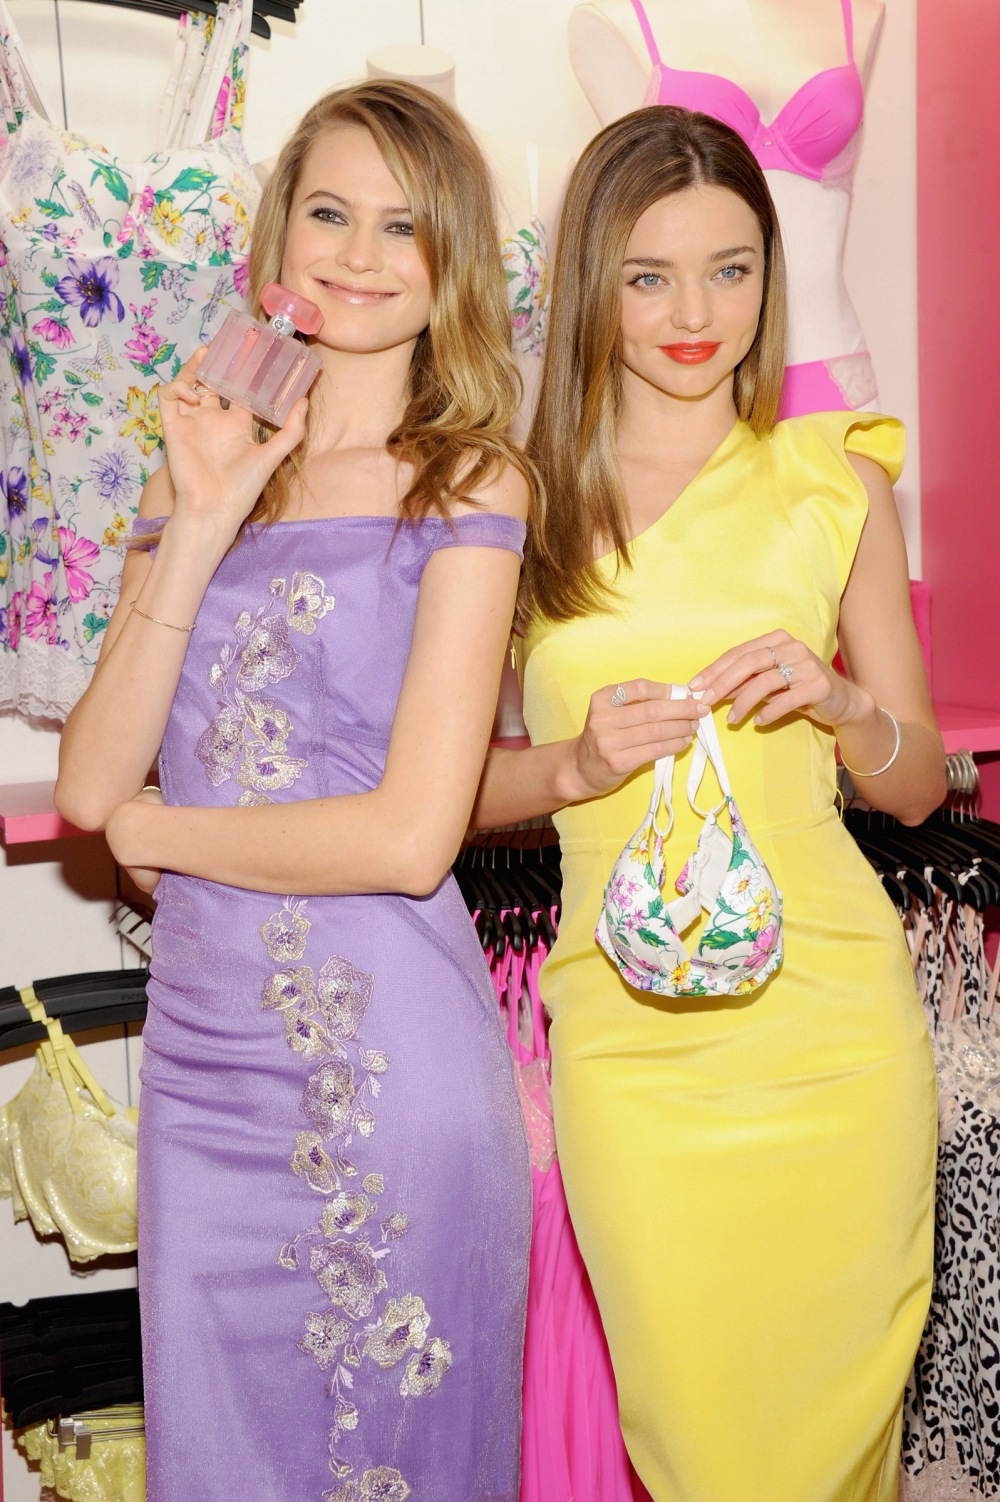 Models Miranda Kerr and Behati Prinsloo attend Victoria's Secret Angels Launch Fabulous Collection at Victoria's Secret Herald Square on February 26, 2013 in New York City.  (Photo by Jamie McCarthy/Getty Images for Victoria's Secret)